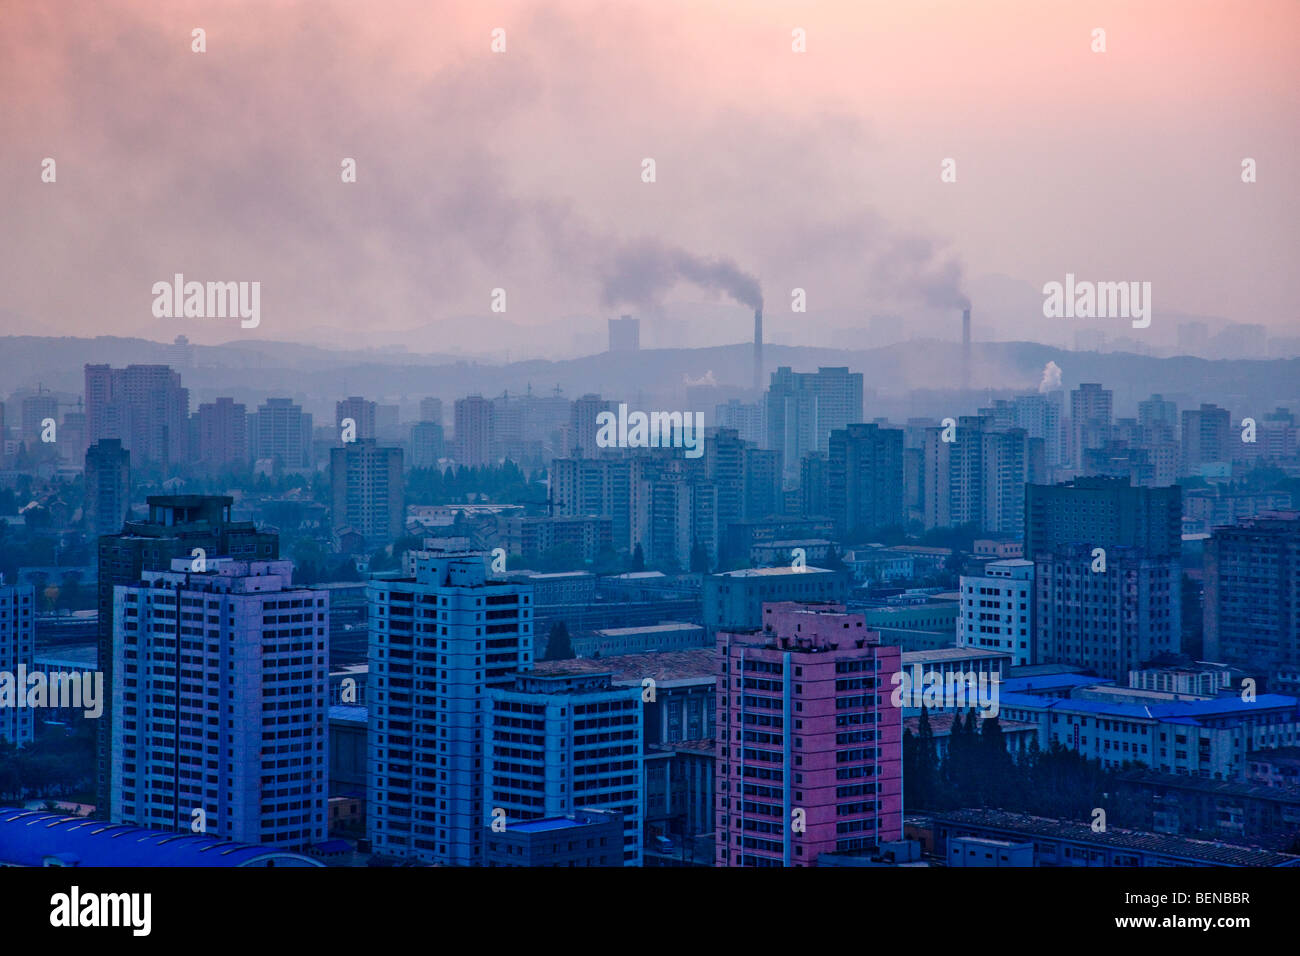 Cityscape, chimney pollution in the distance, Pyongyang, North Korea - Stock Image